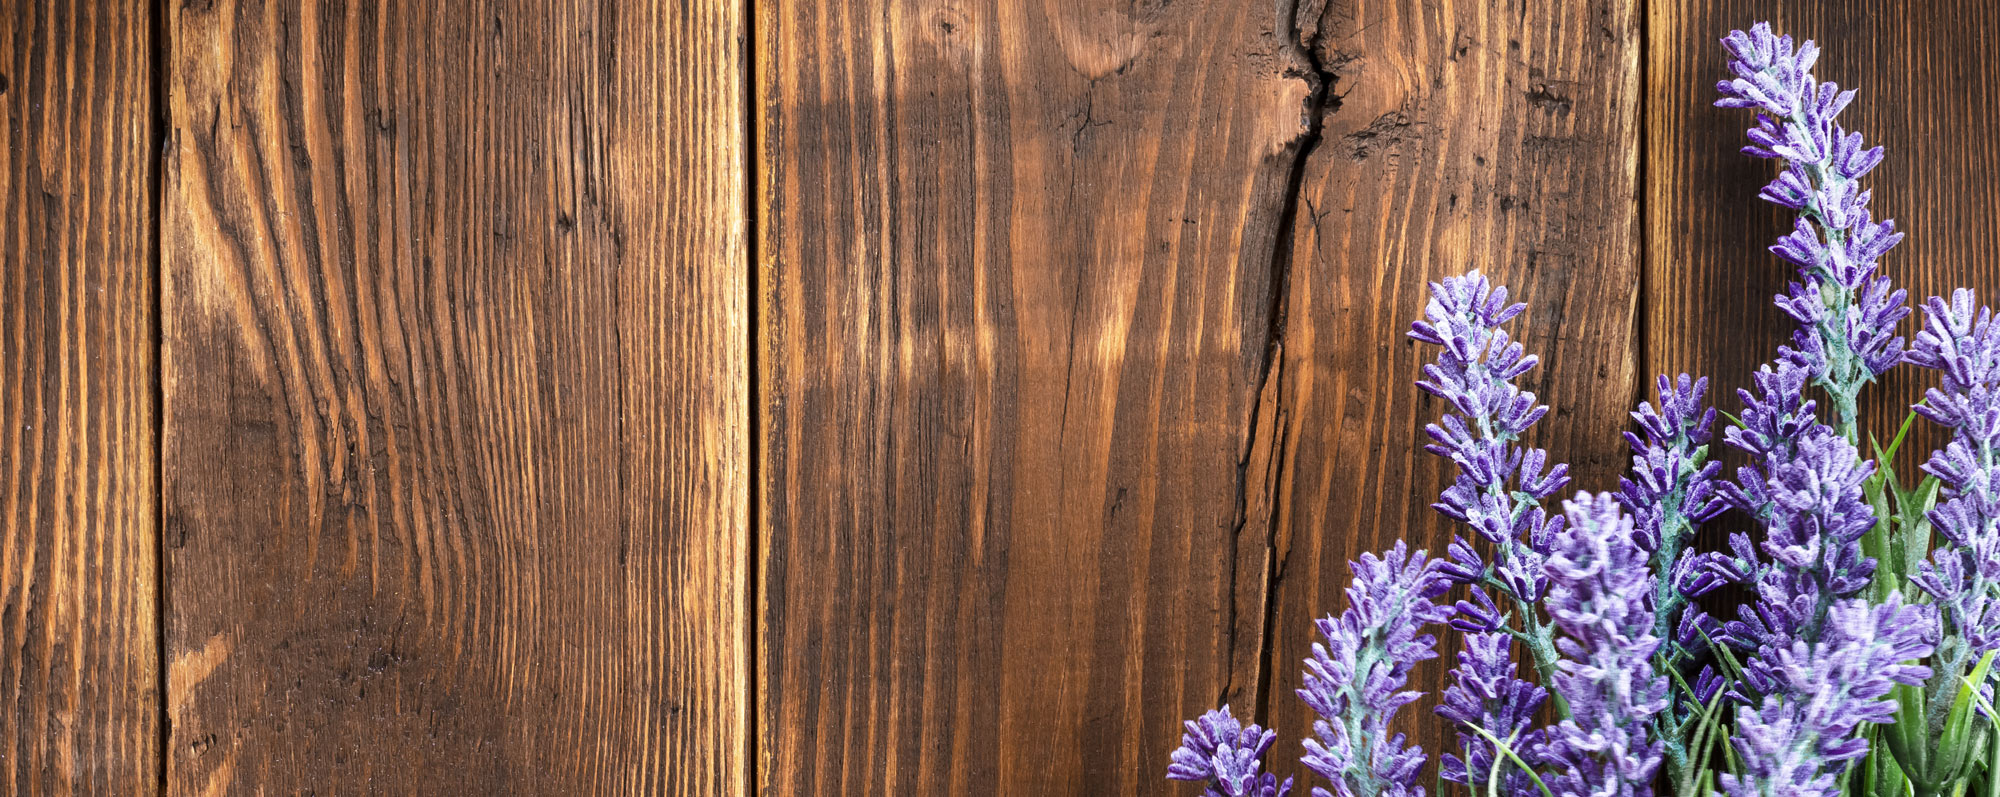 wood and heather